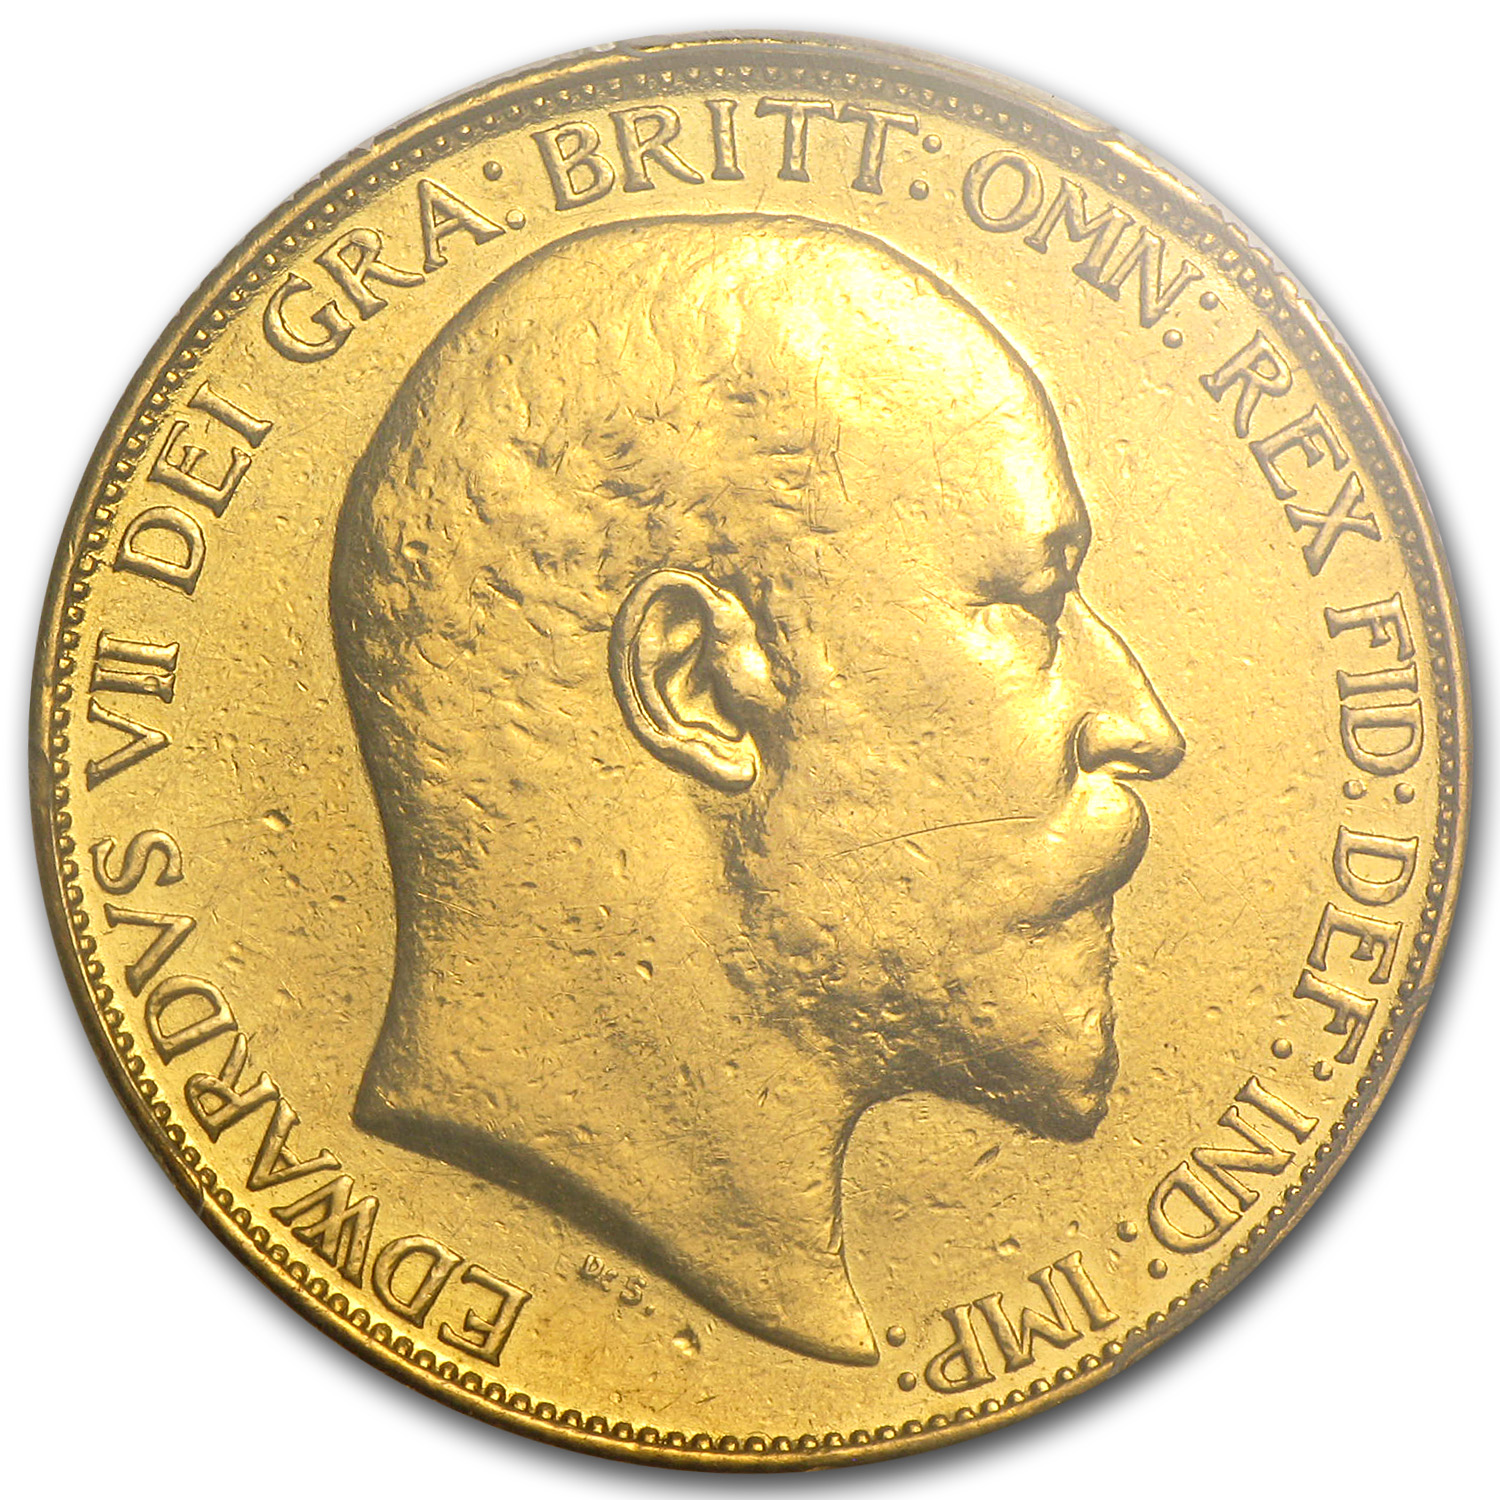 Great Britain 1902 Gold 2 Pound Edward VII (PCGS Genuine)